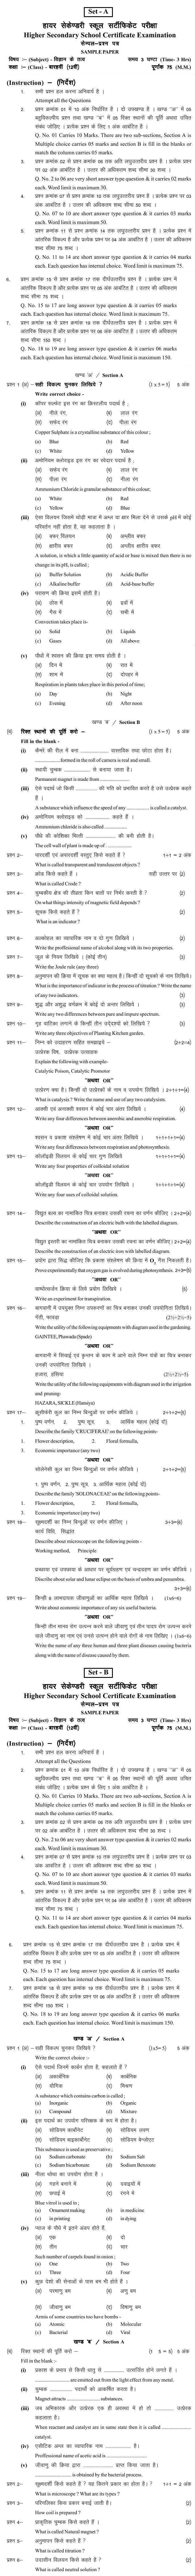 Chattisgarh Board Class 12 Elements of Science Sample Paper